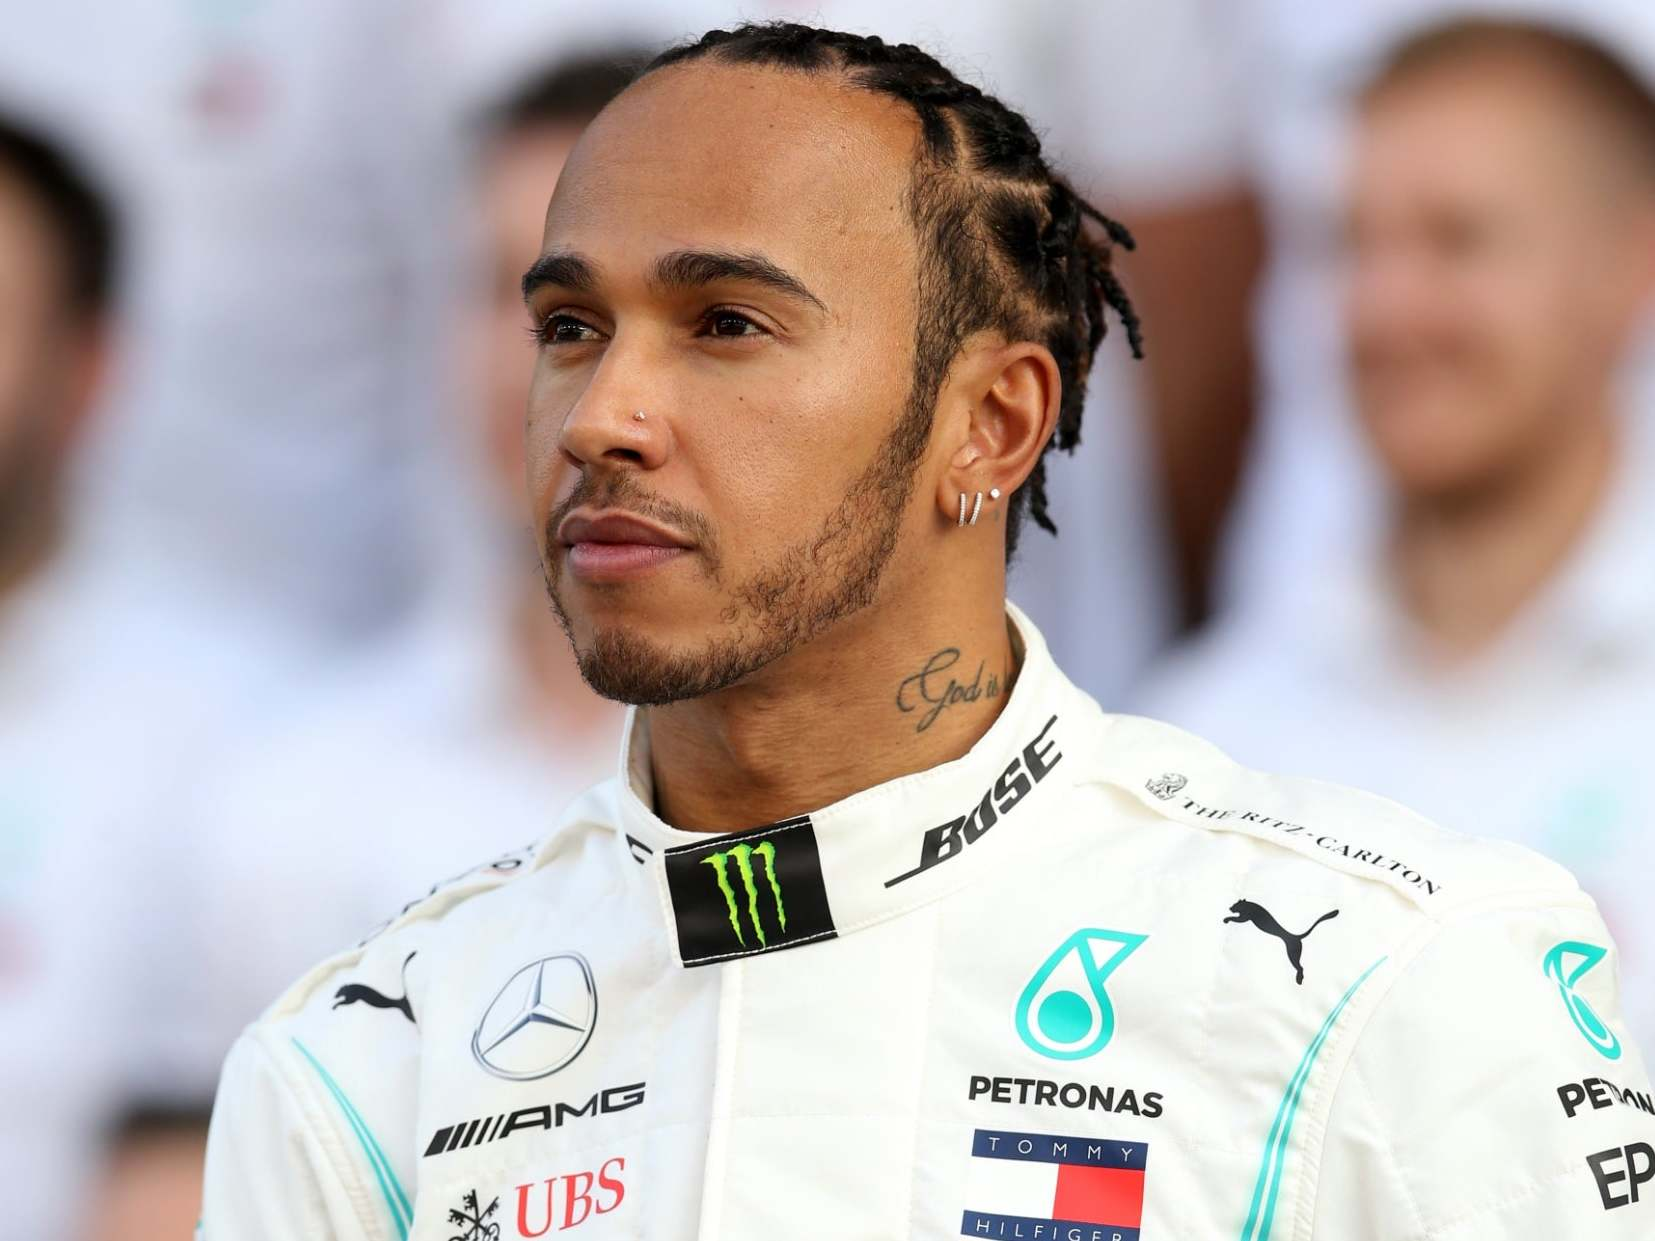 Netflix to accompany Mercedes' Lewis Hamilton at Sochi with Michael Schumacher's record set to be equalized